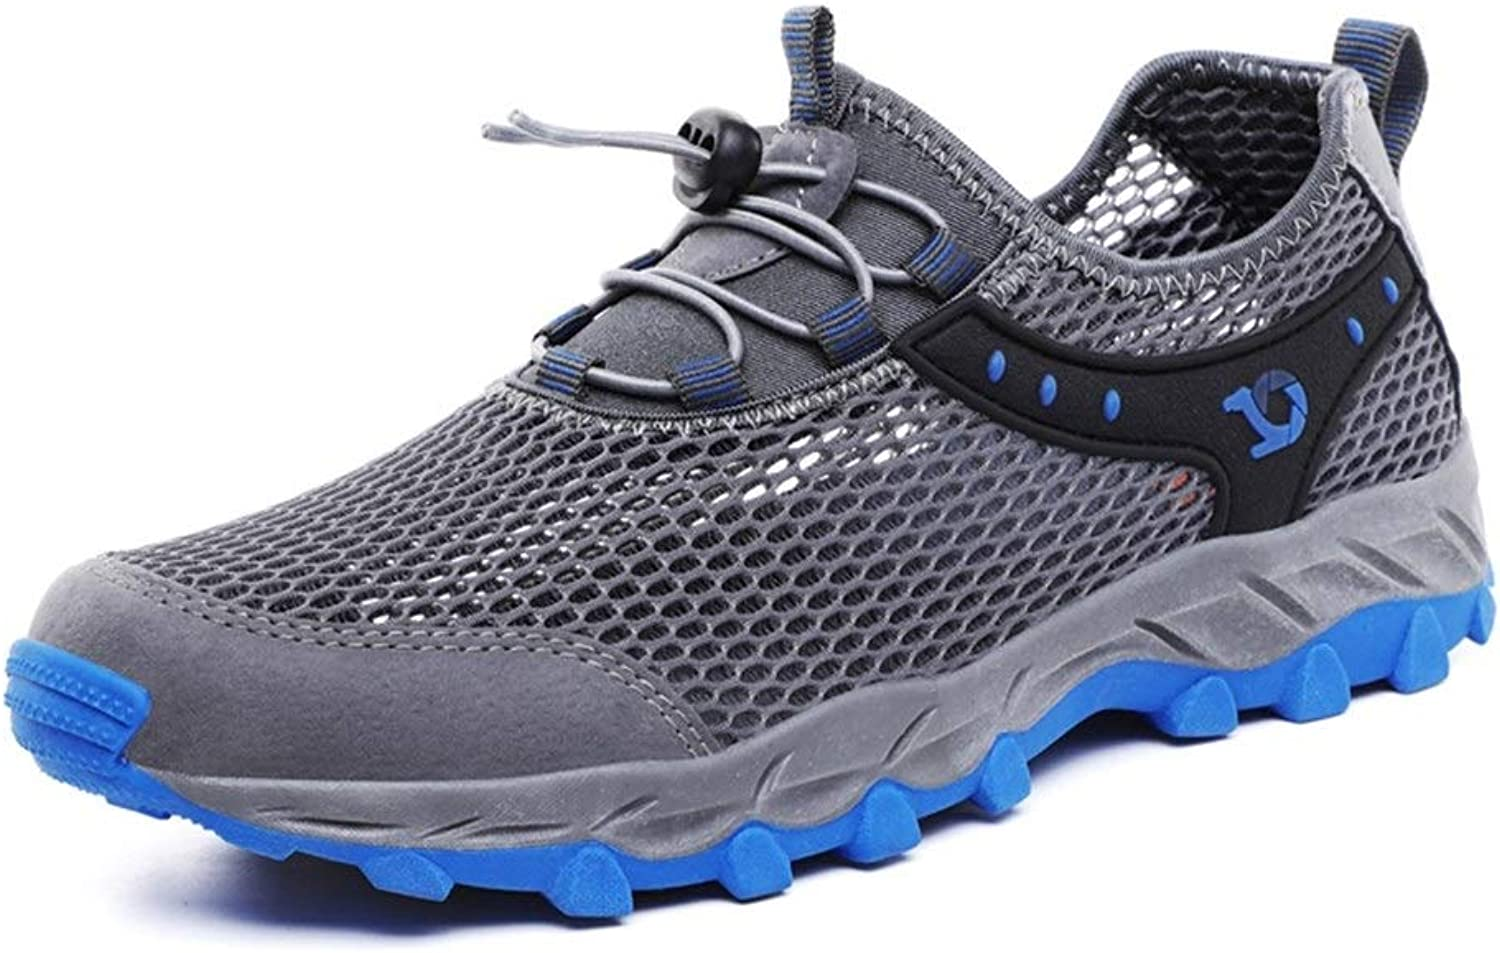 YI-WAN Non-Slip Athletic shoes Soft-Soled Men Sports shoes Lace Up Style Leisure Fashion Hollow Out Mesh Material Fresh and Breathable Anti-Collision Toe Comfortable